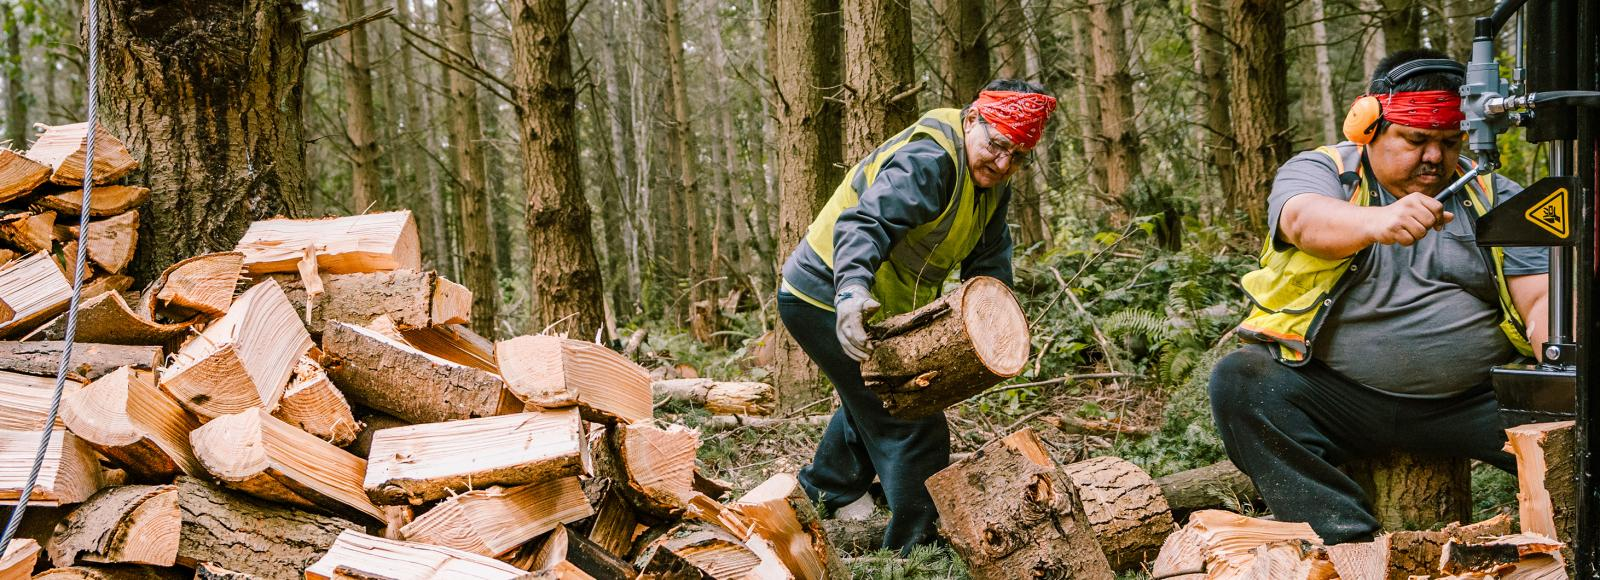 A large pile of chopped wood beside two men wearing safety vests. One man is holding a piece of wood, the other man is using machinery to cut the wood.